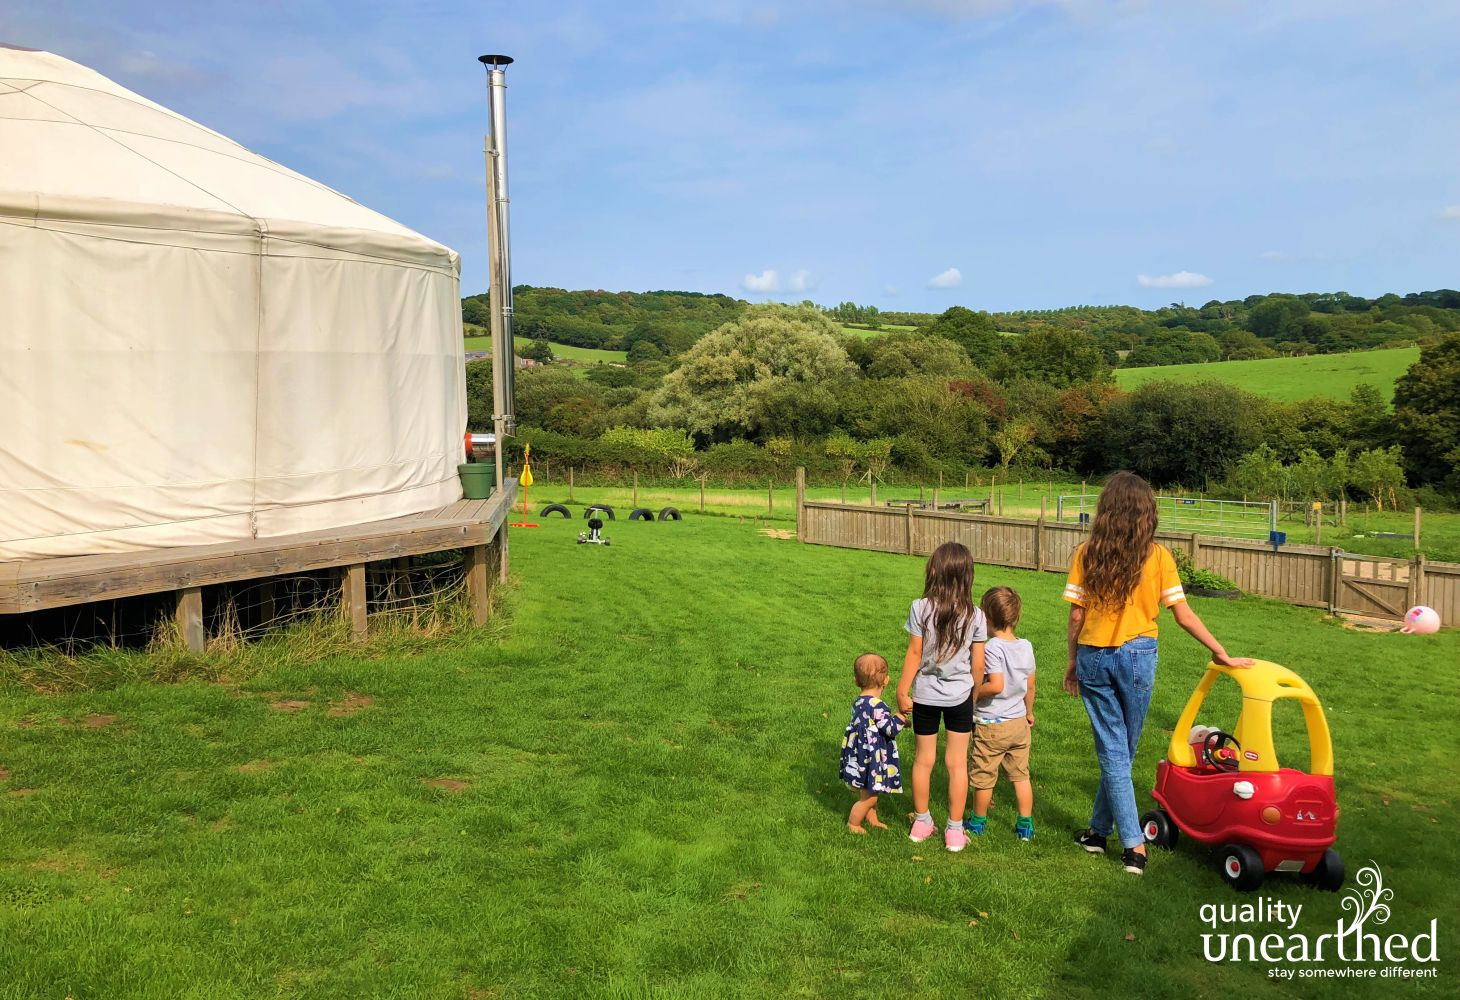 Family Yurts - Beneath The Waves in Isle of Wight